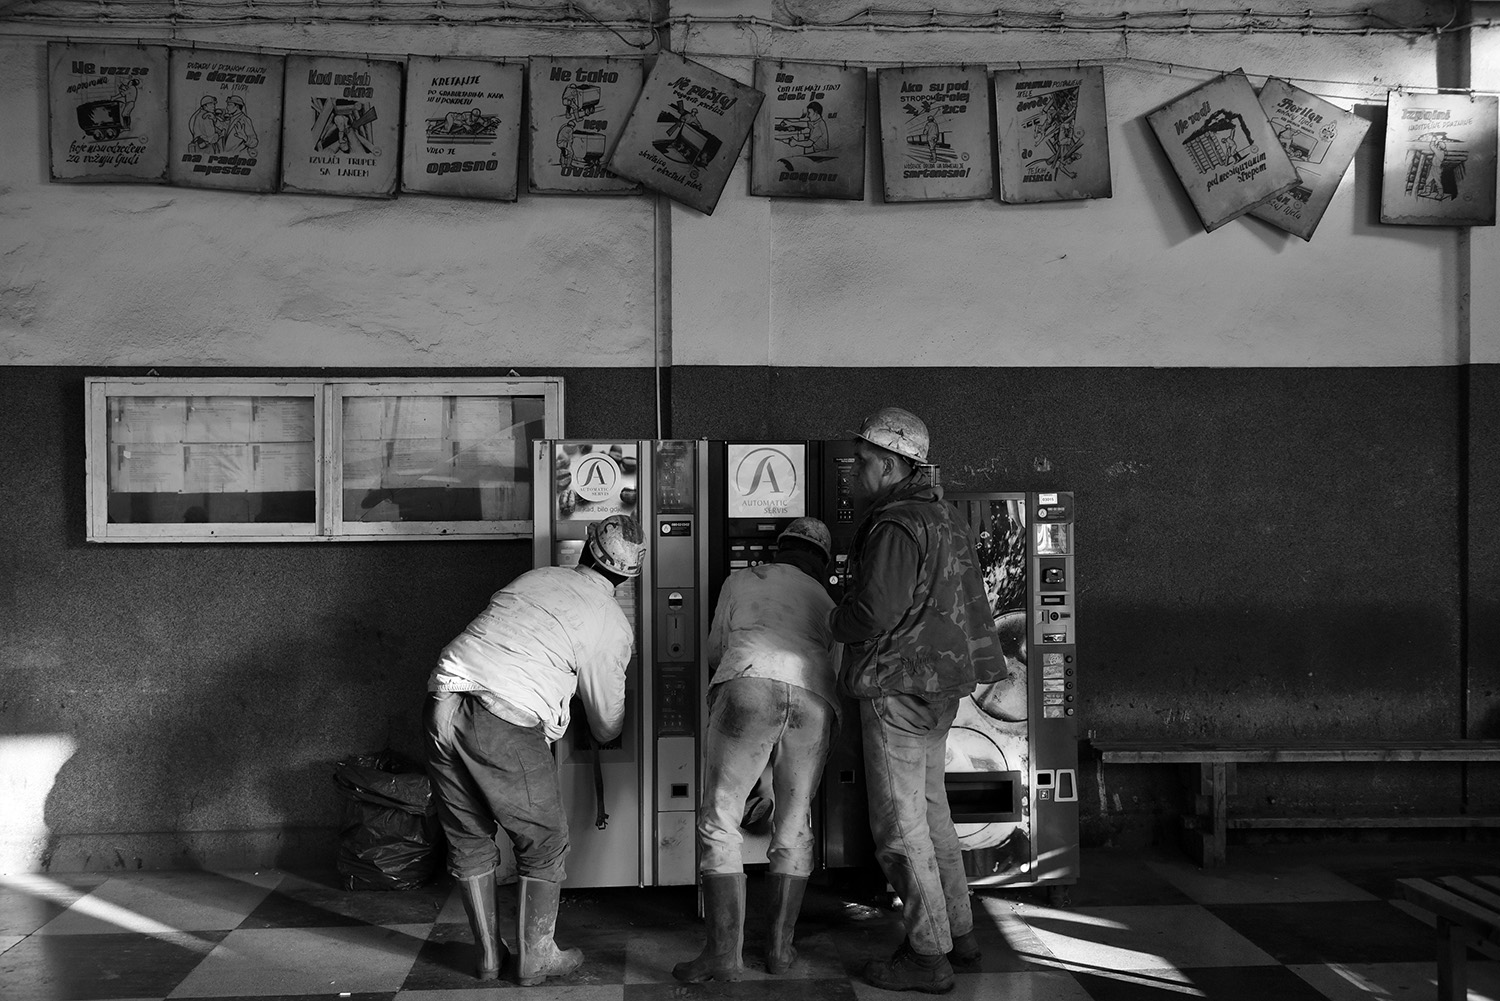 Coal miners take a coffee from a coffee machine after hard work.